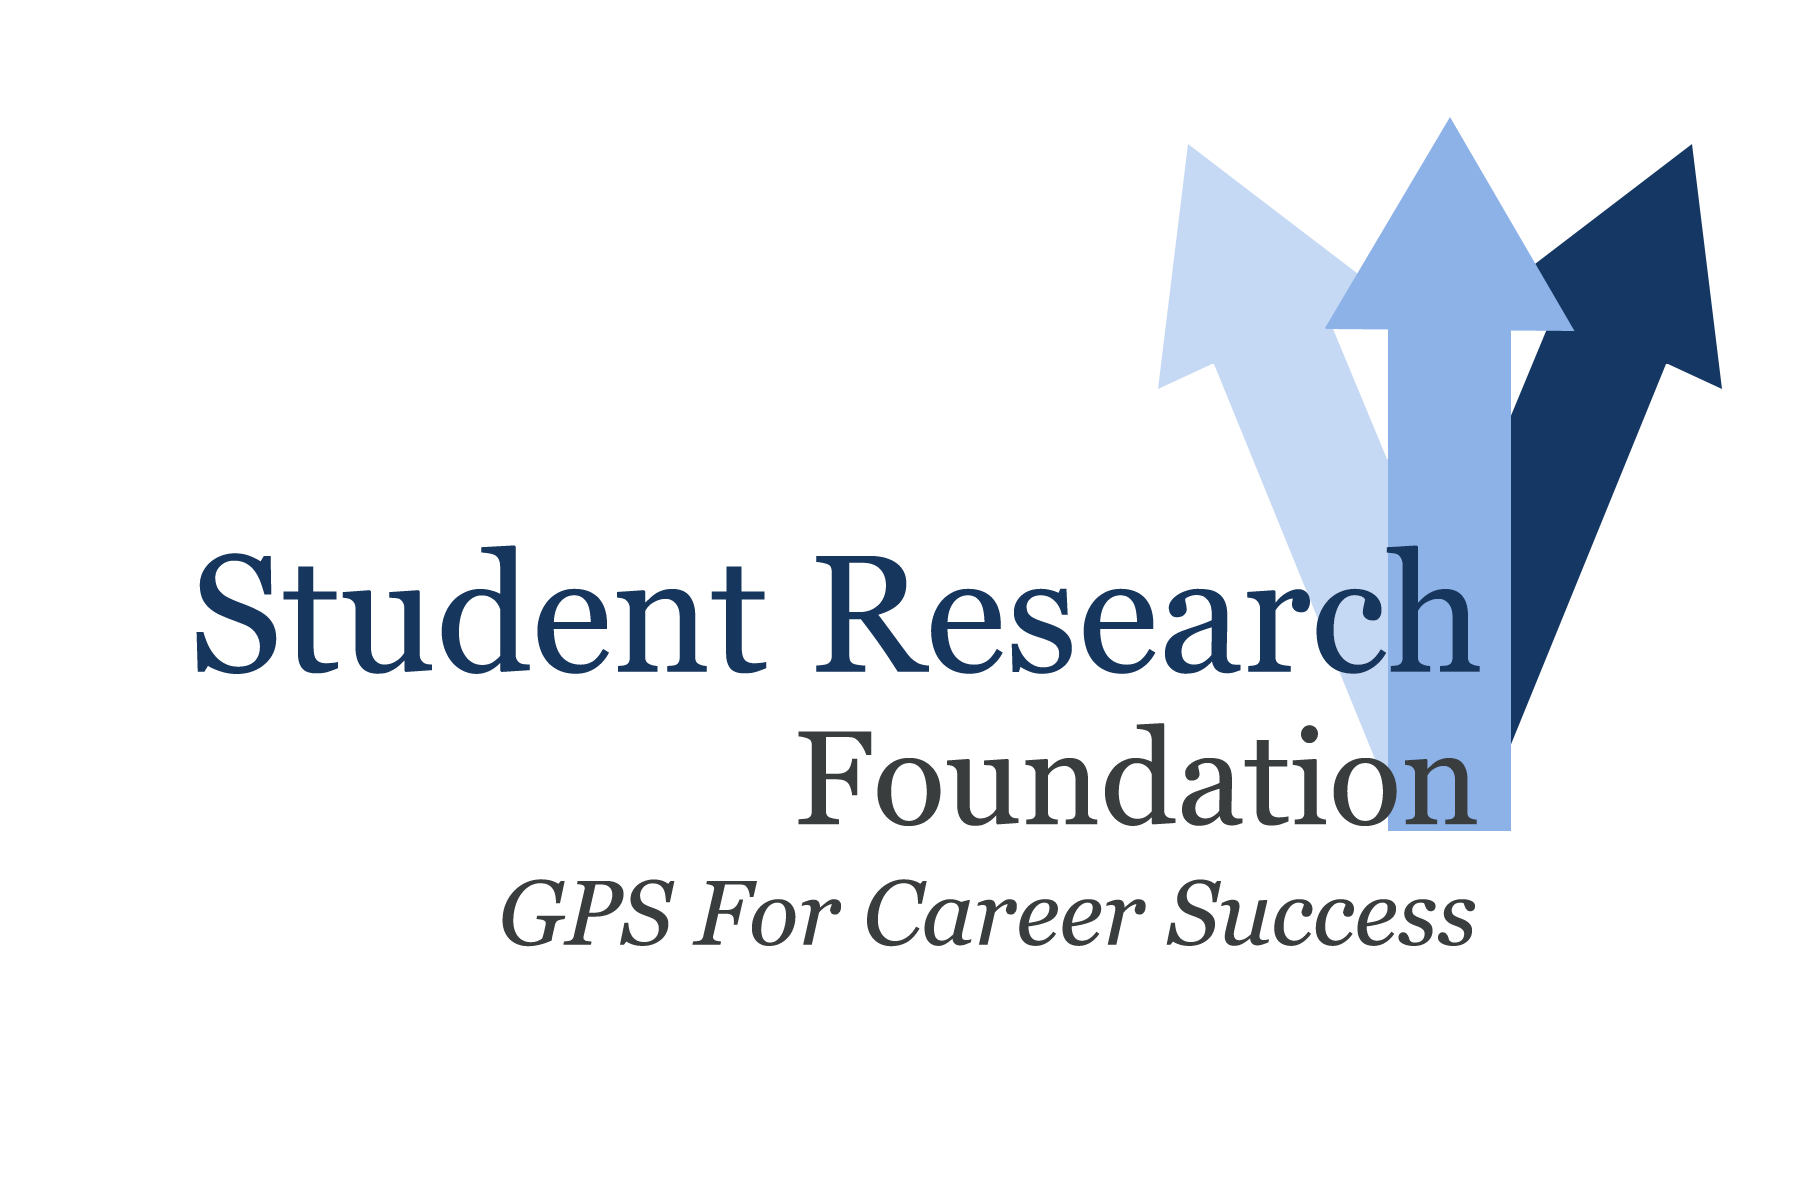 Student Research Foundation-logo_tagline (002).png